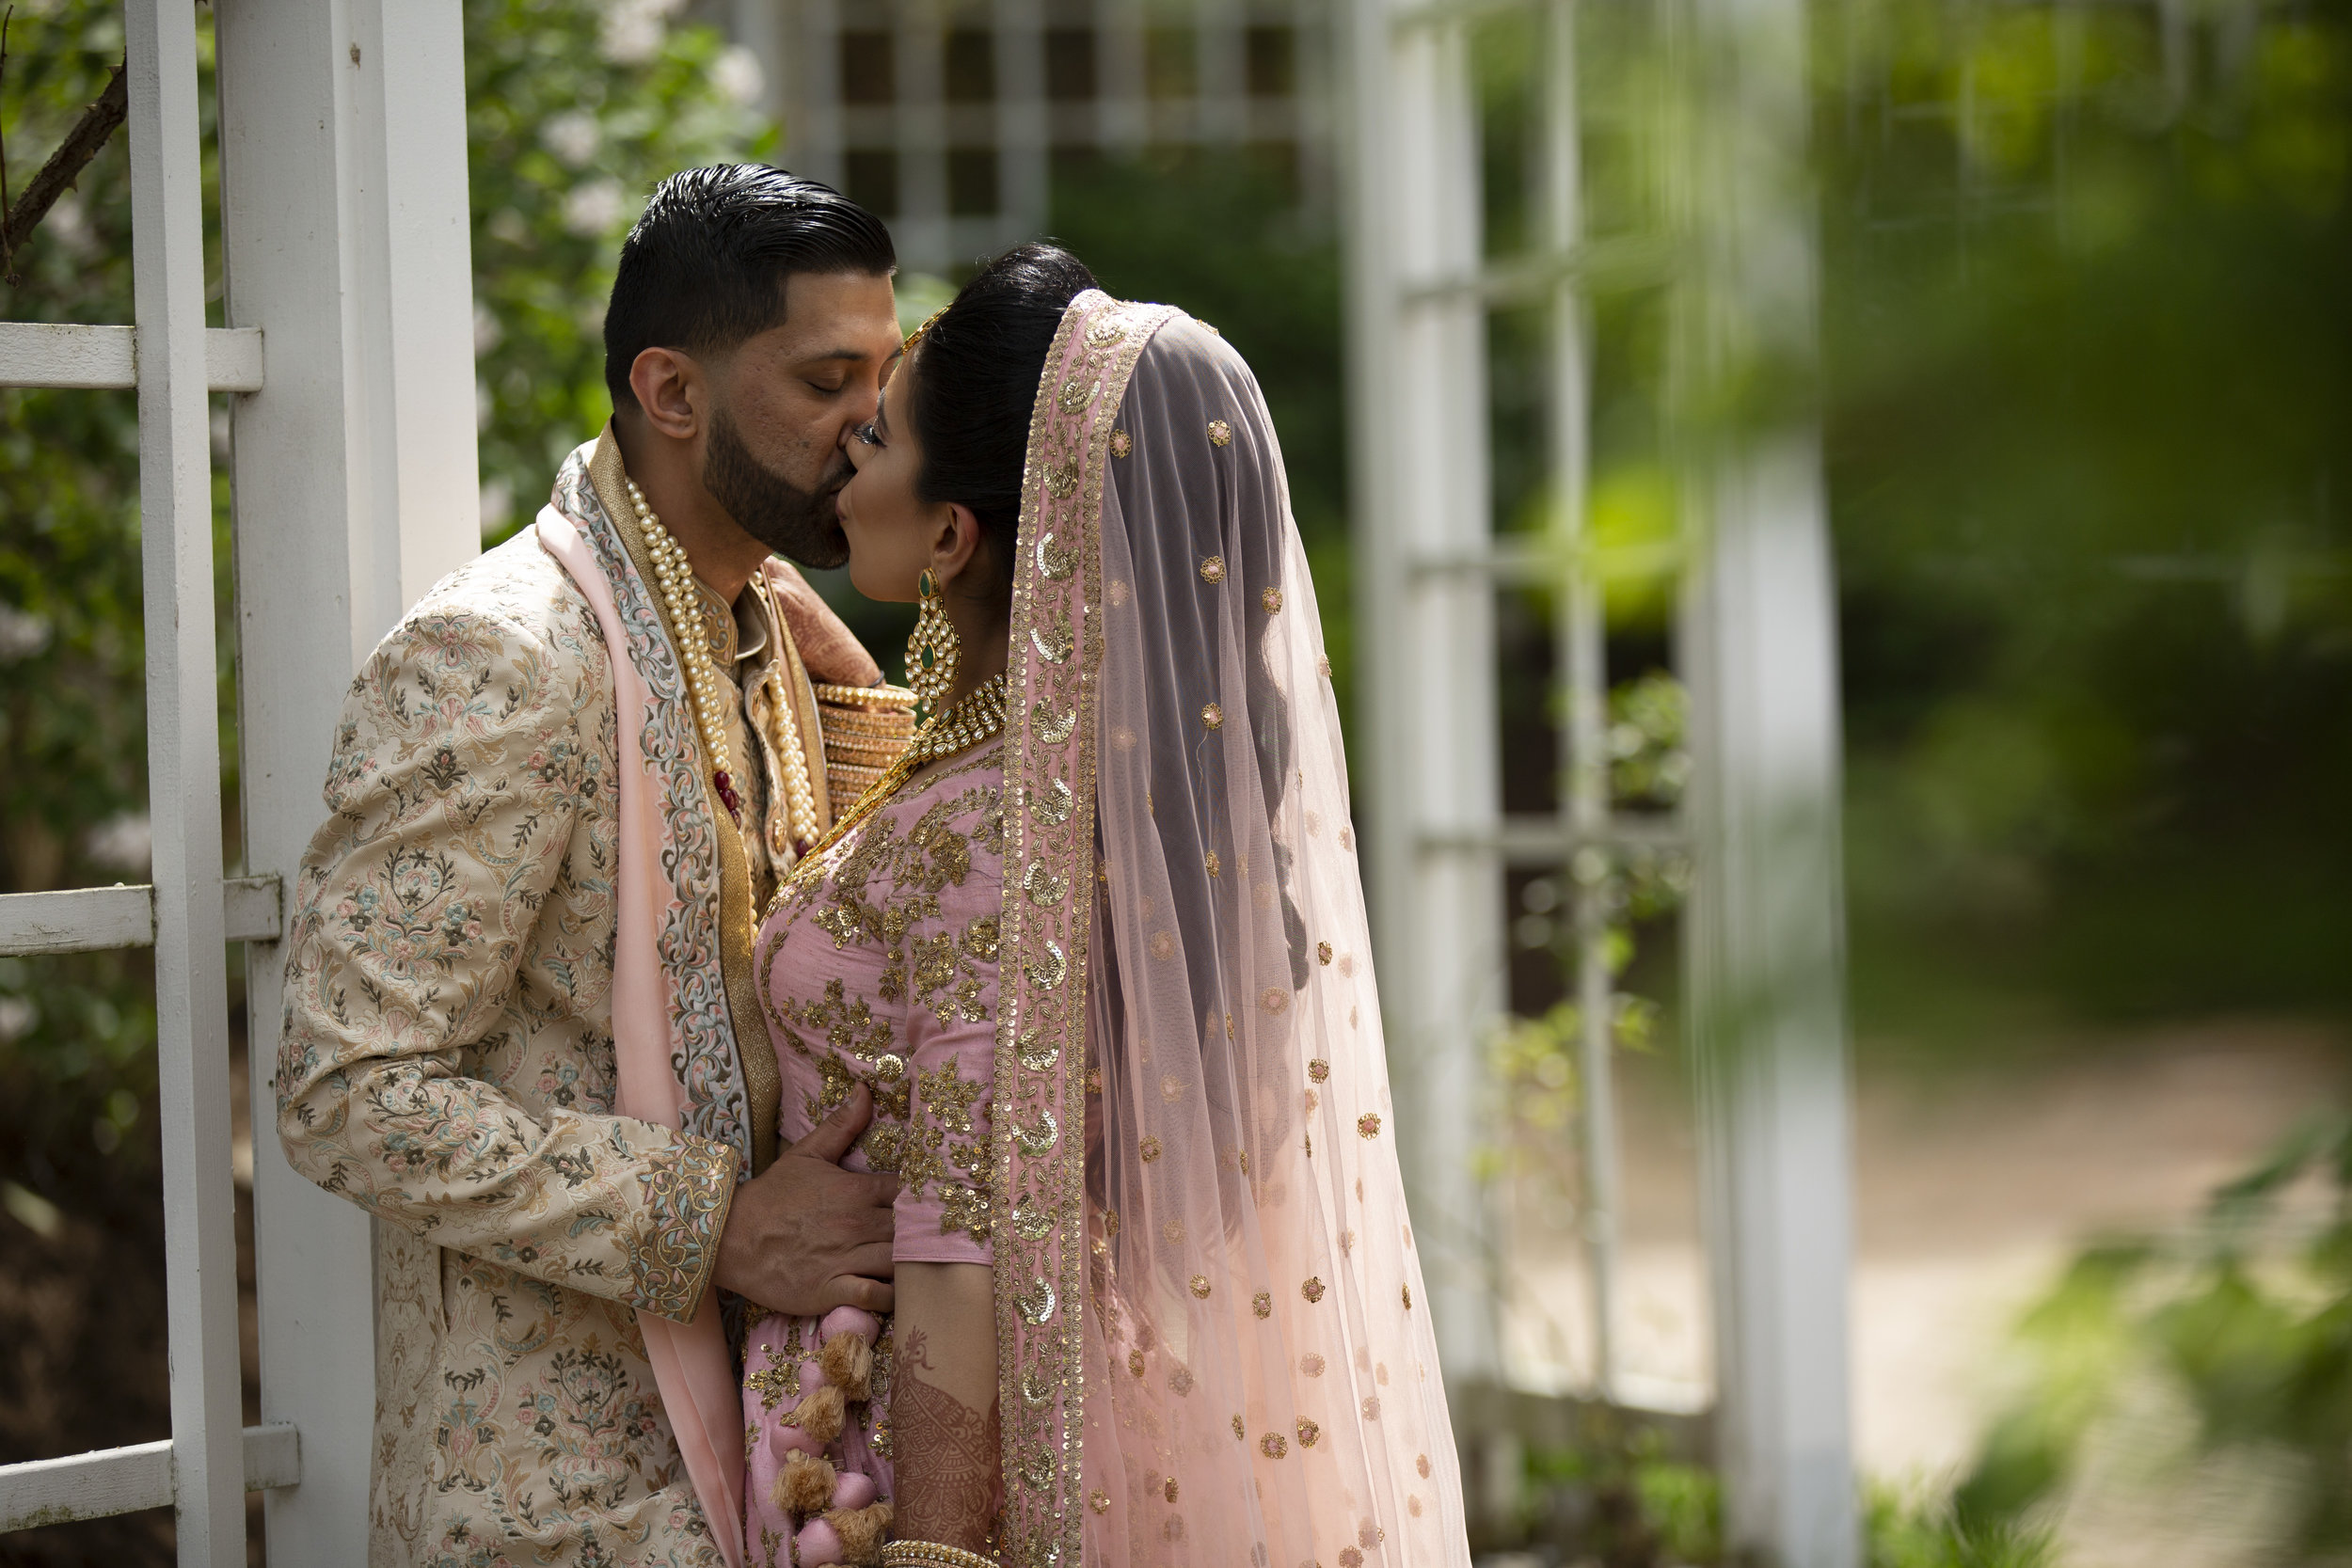 INDIAN WEDDING CEREMONY BRIDE AND GROOM KISS.JPG